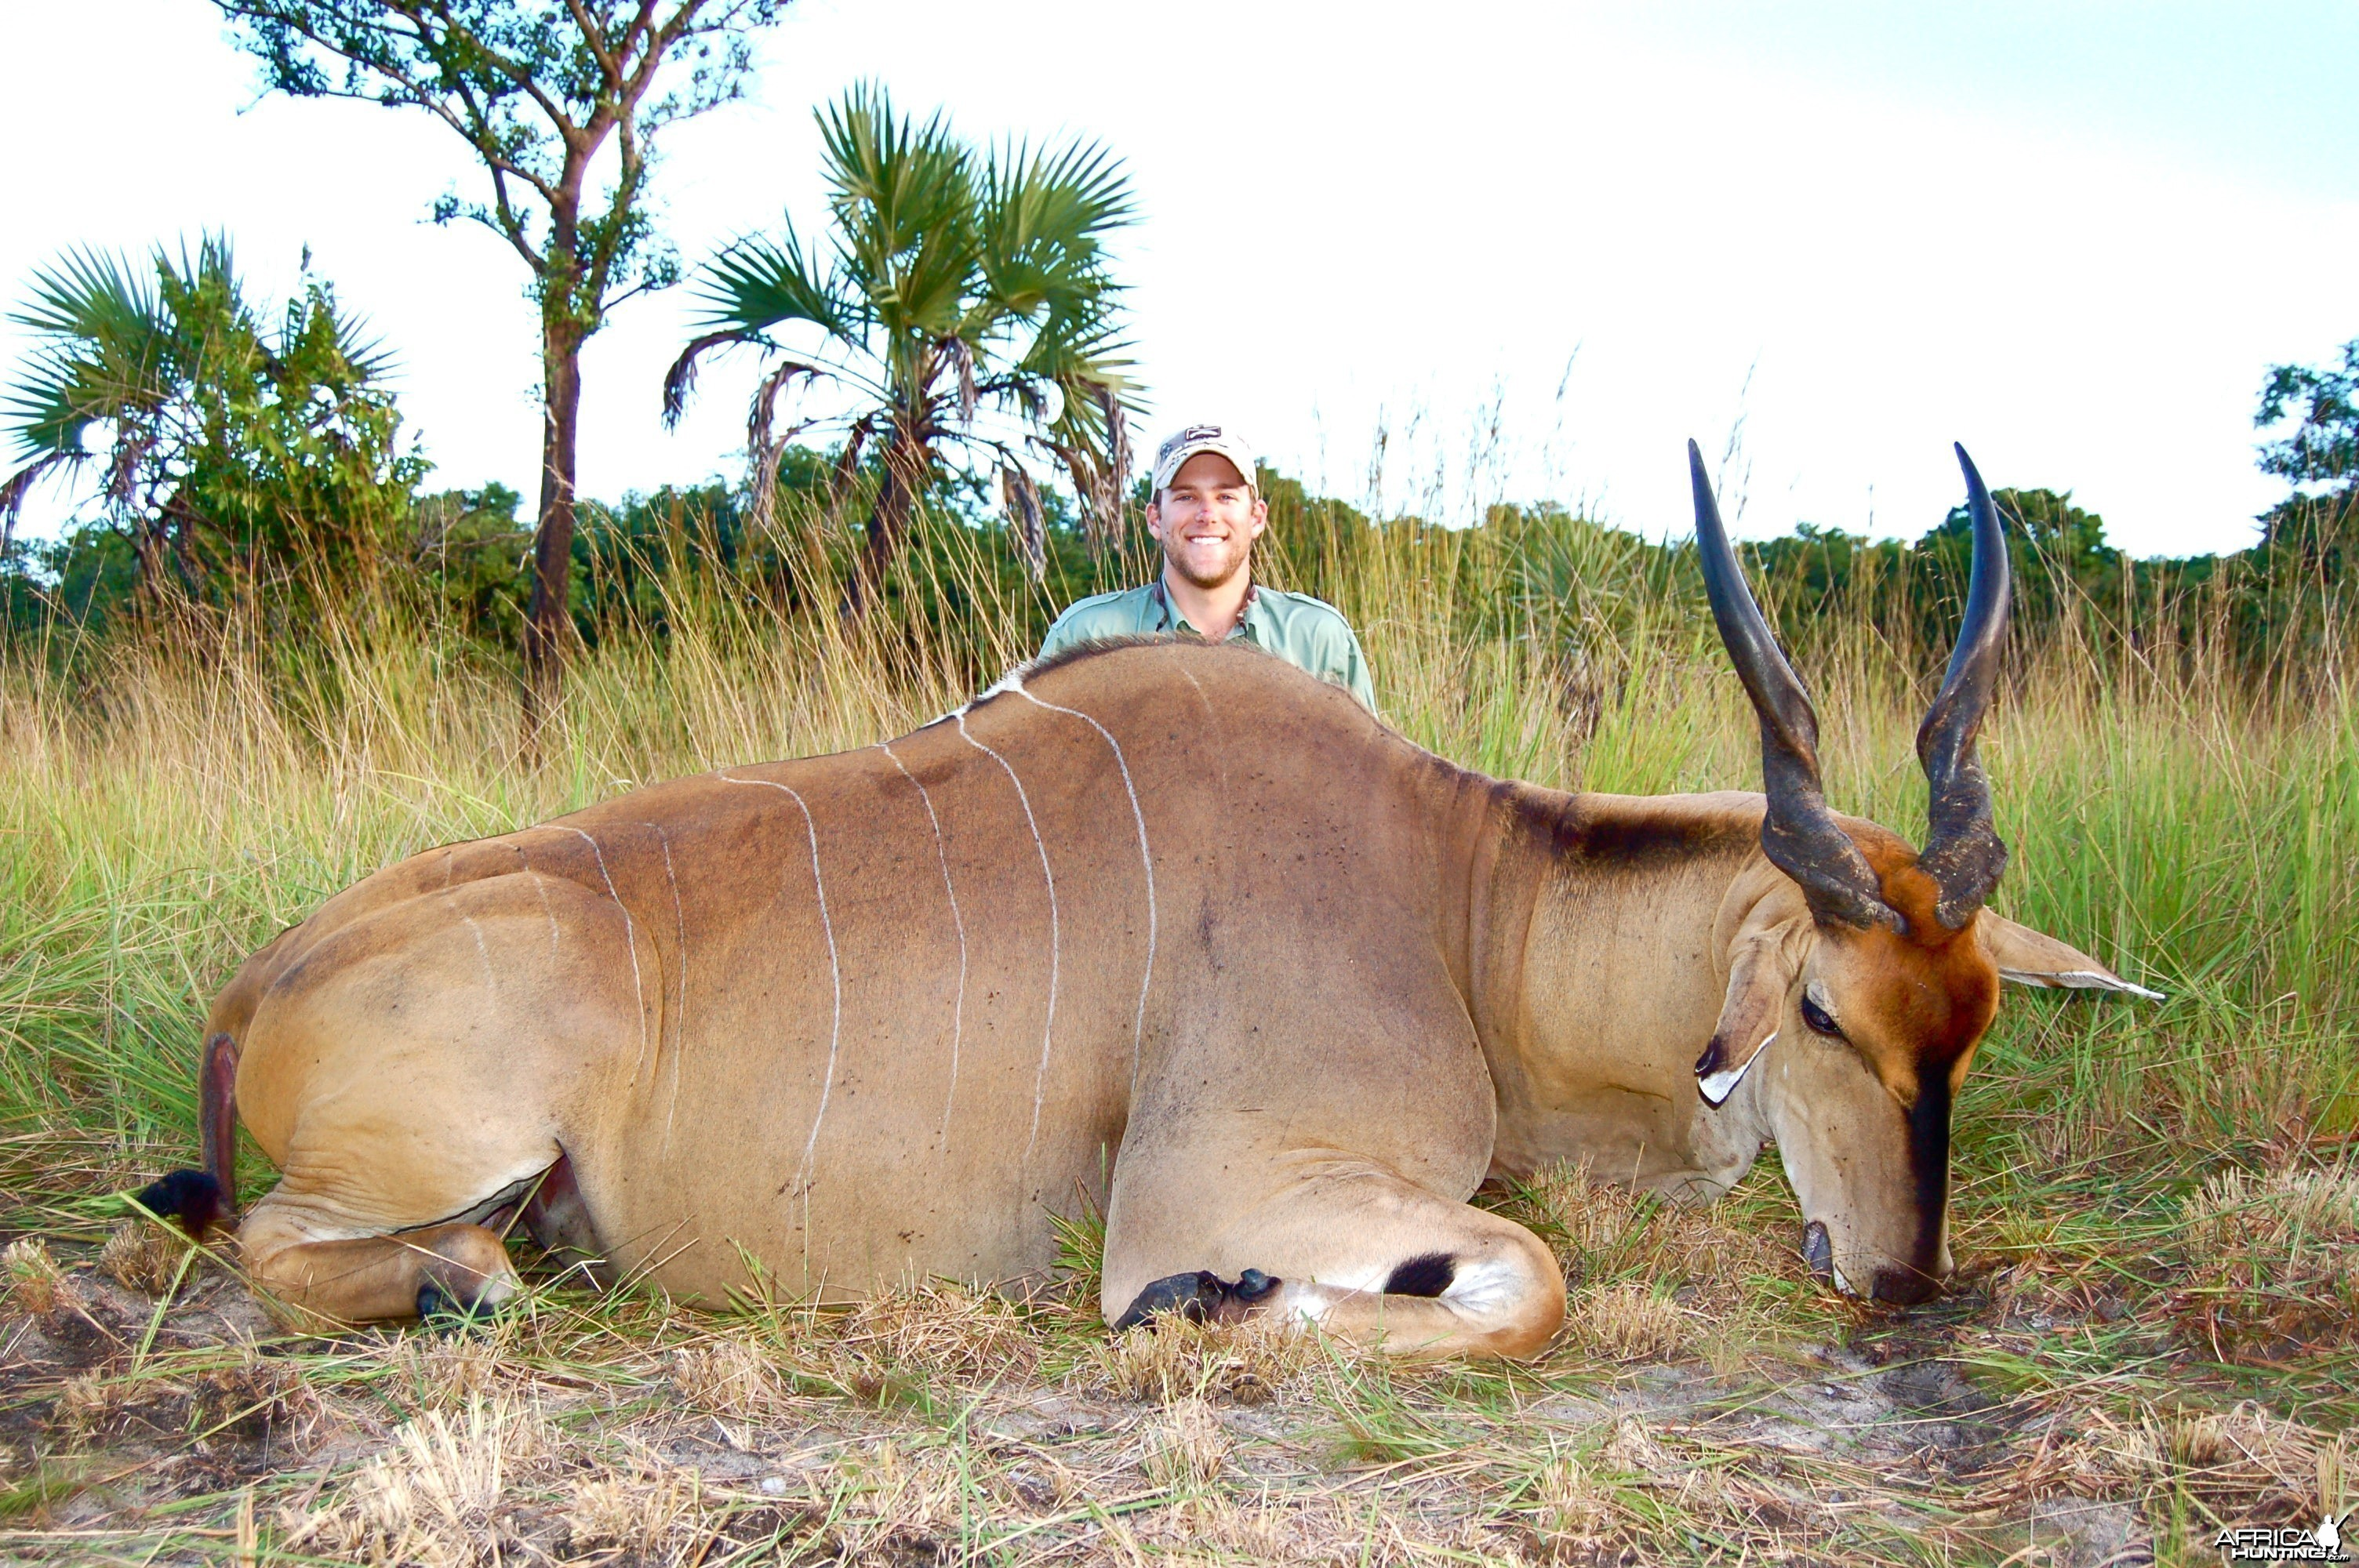 Livingstone's Eland Taken in Coutada 11, Mozambique, June 2010